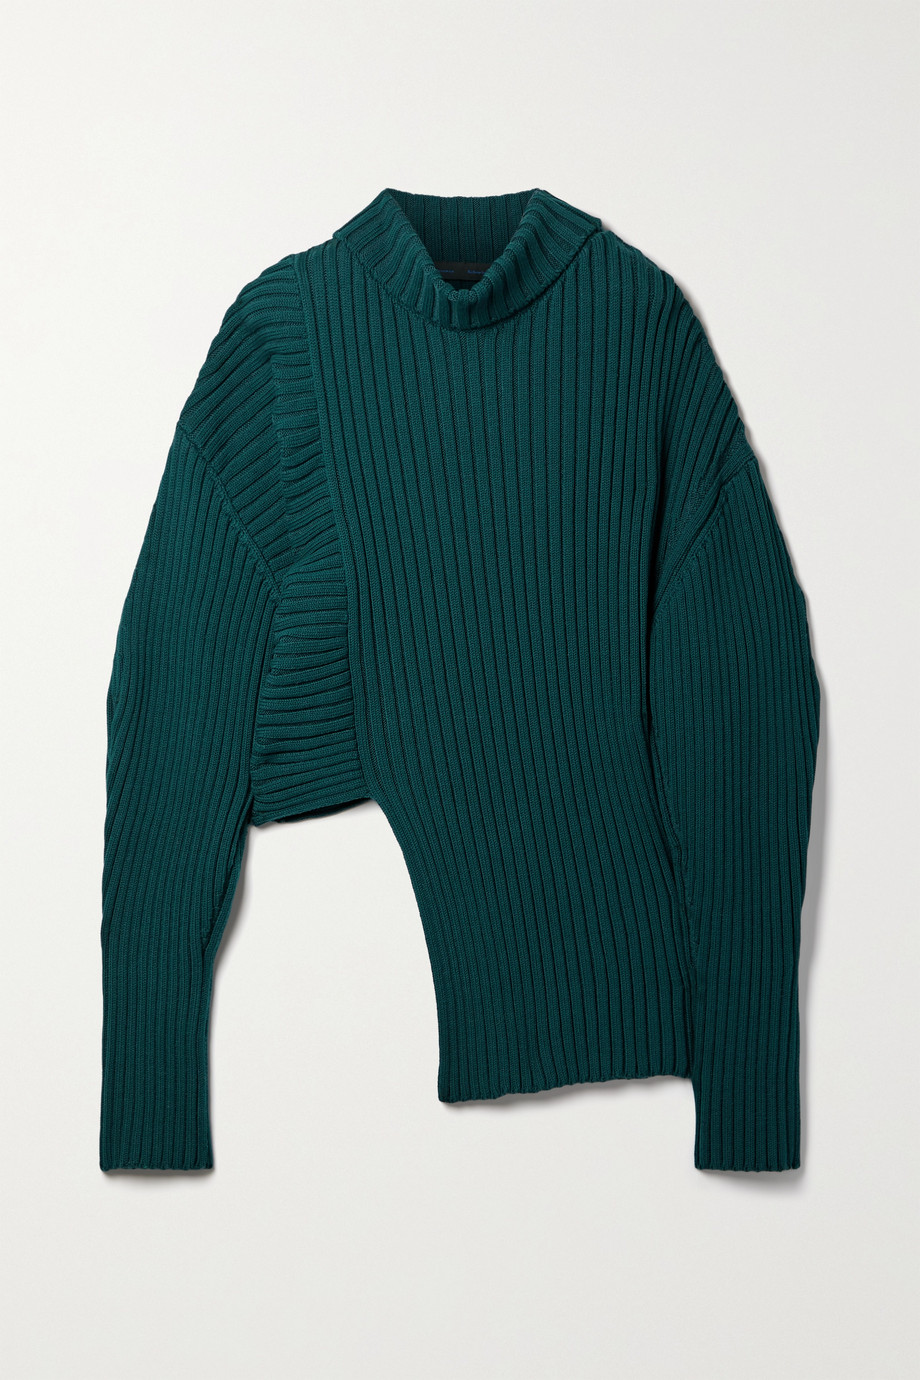 Proenza Schouler Asymmetric ribbed cotton, cashmere and silk-blend turtleneck sweater